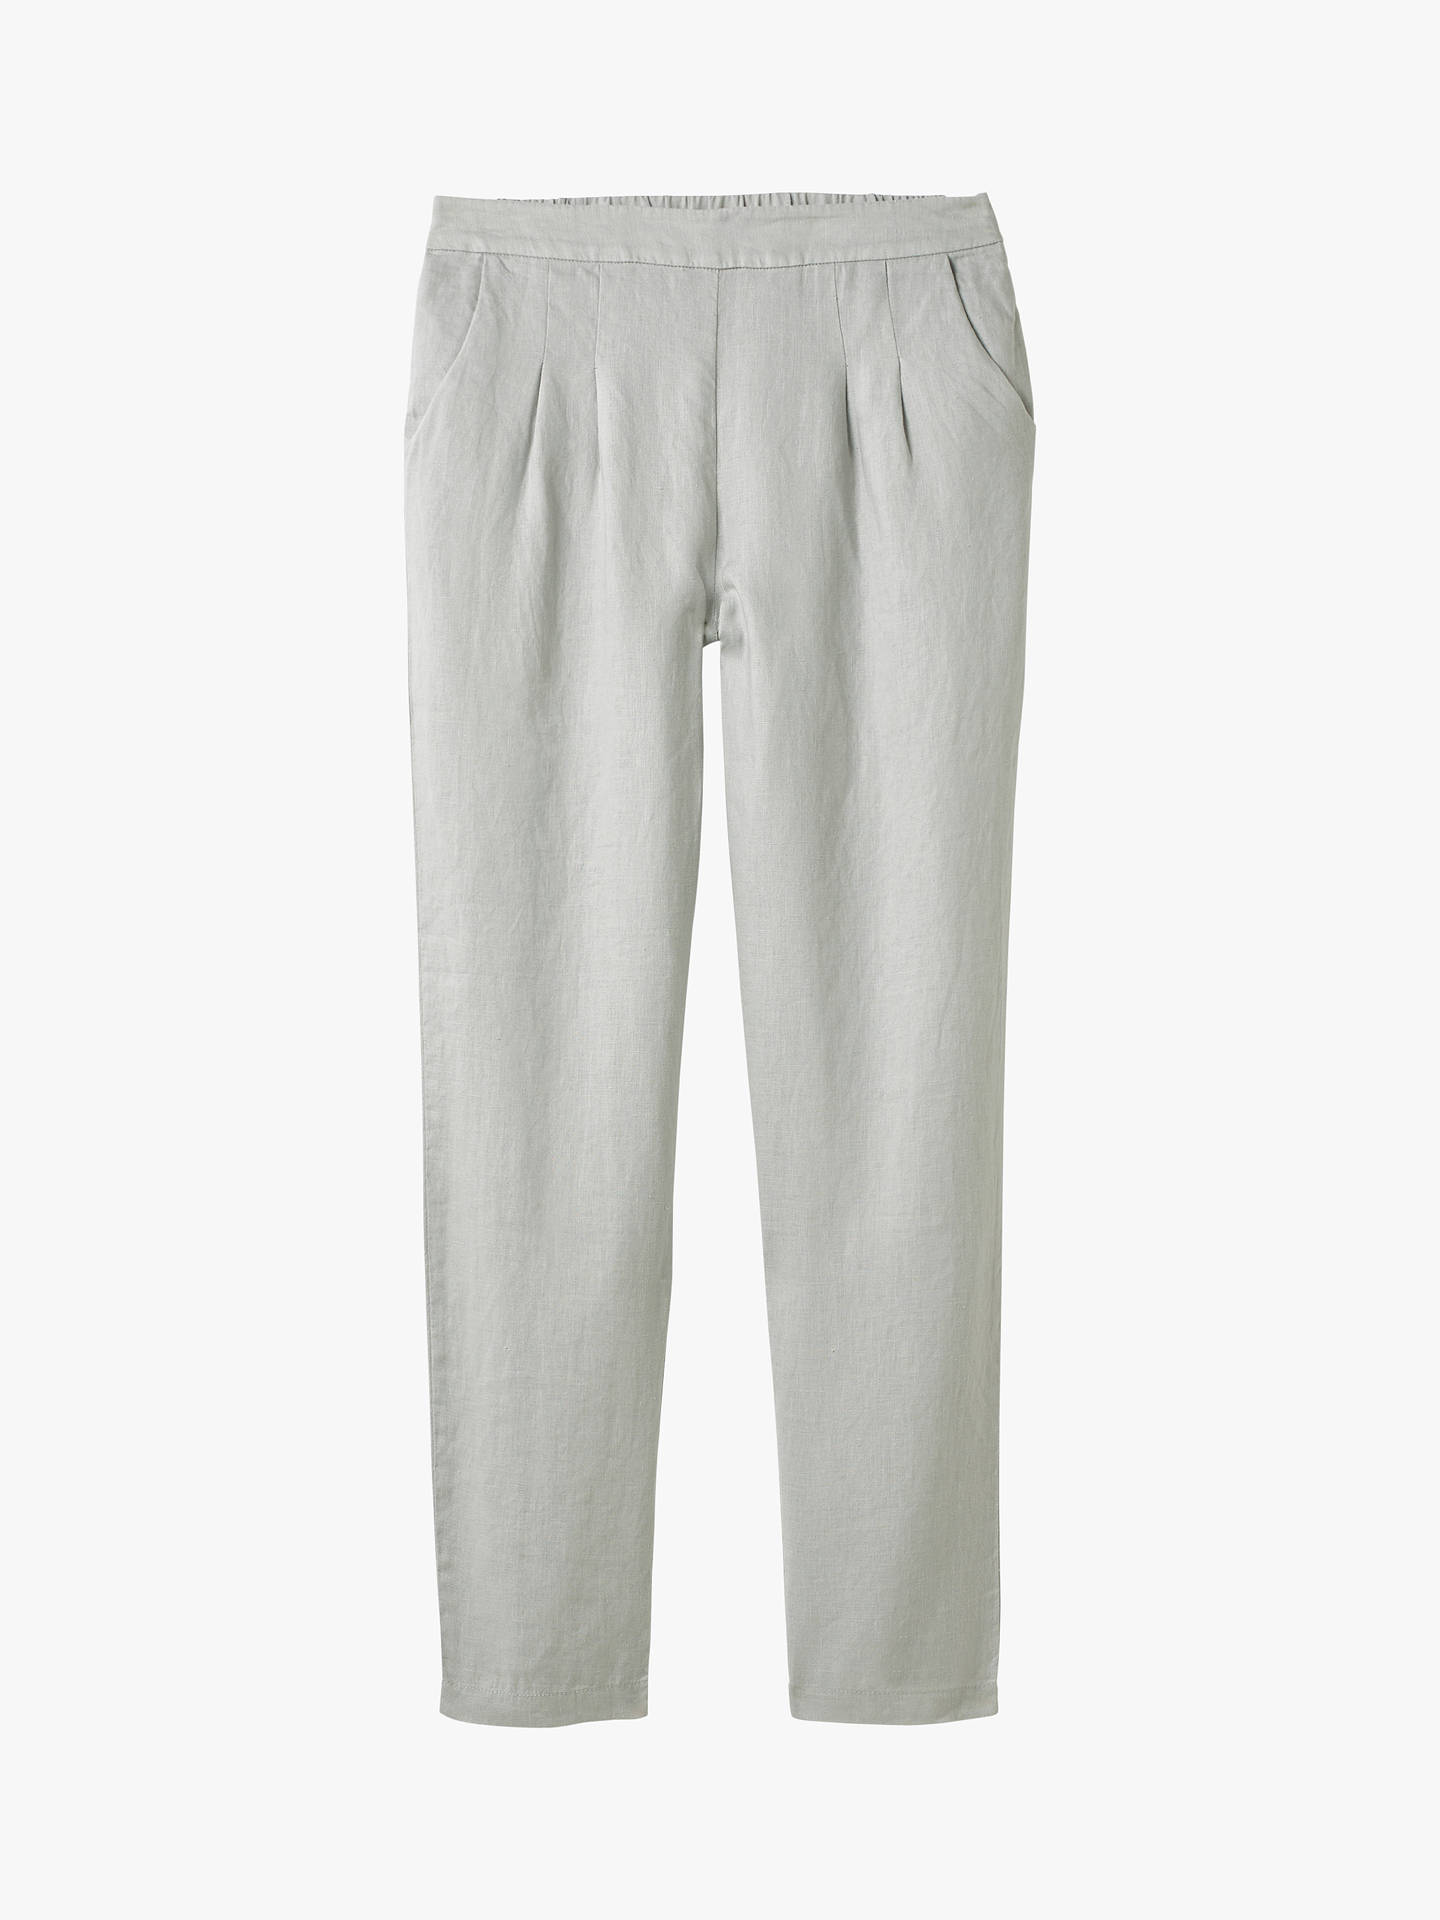 Buy White Stuff Maison Linen Trousers, Grey, 6R Online at johnlewis.com